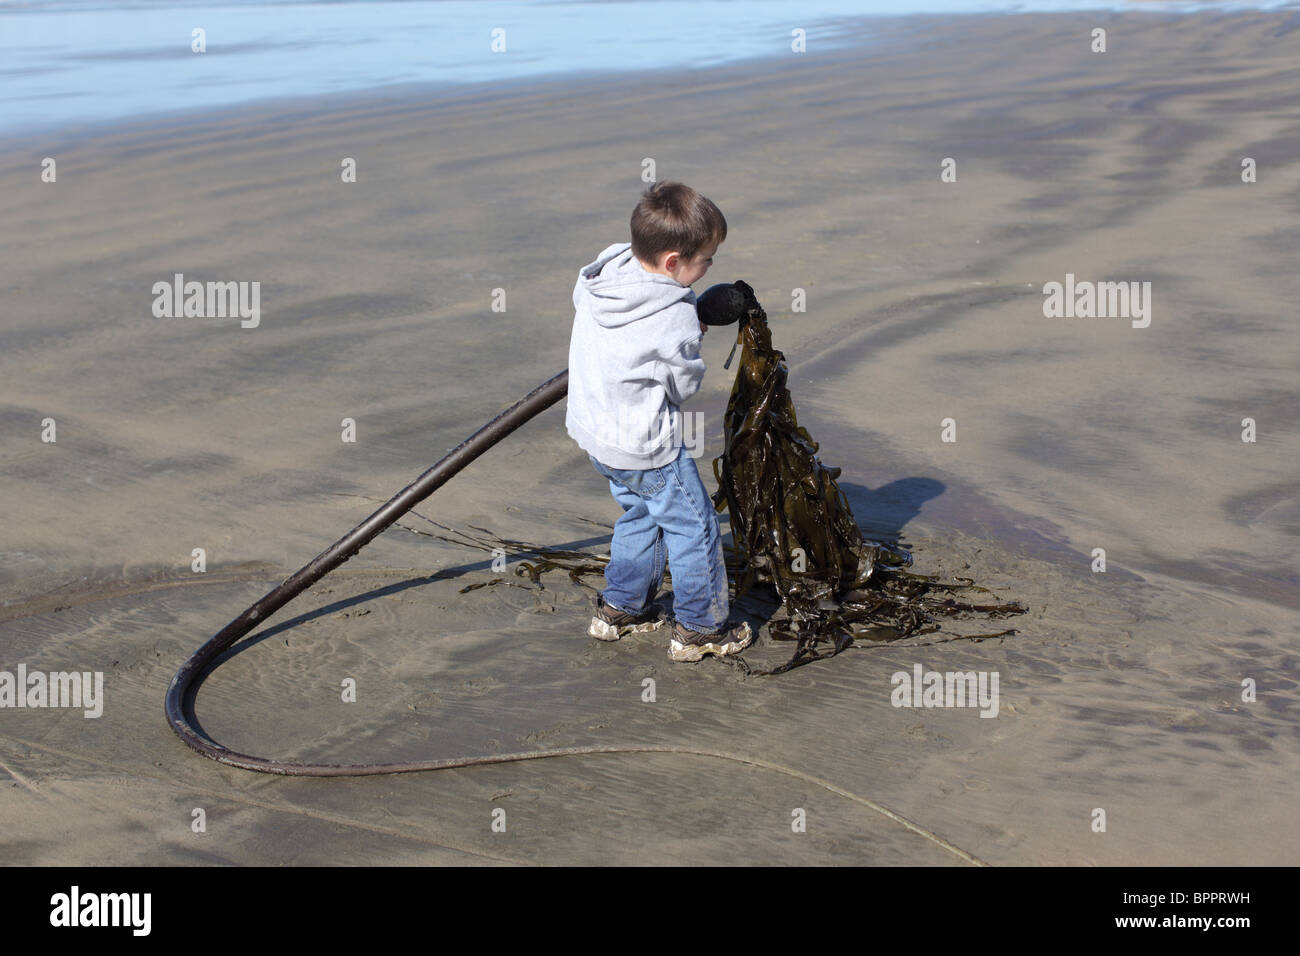 Young boy at beach picking up seaweed - Stock Image